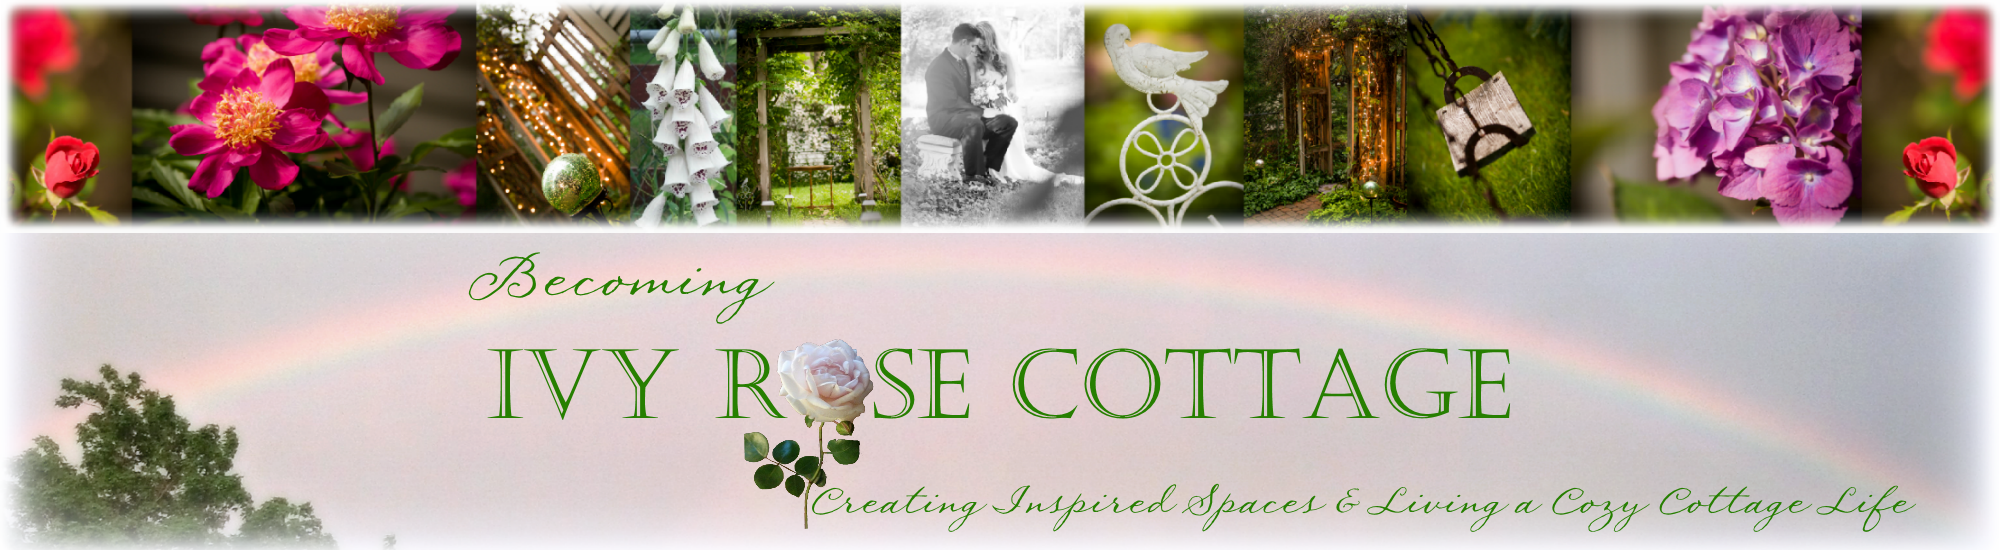 Becoming Ivy Rose Cottage